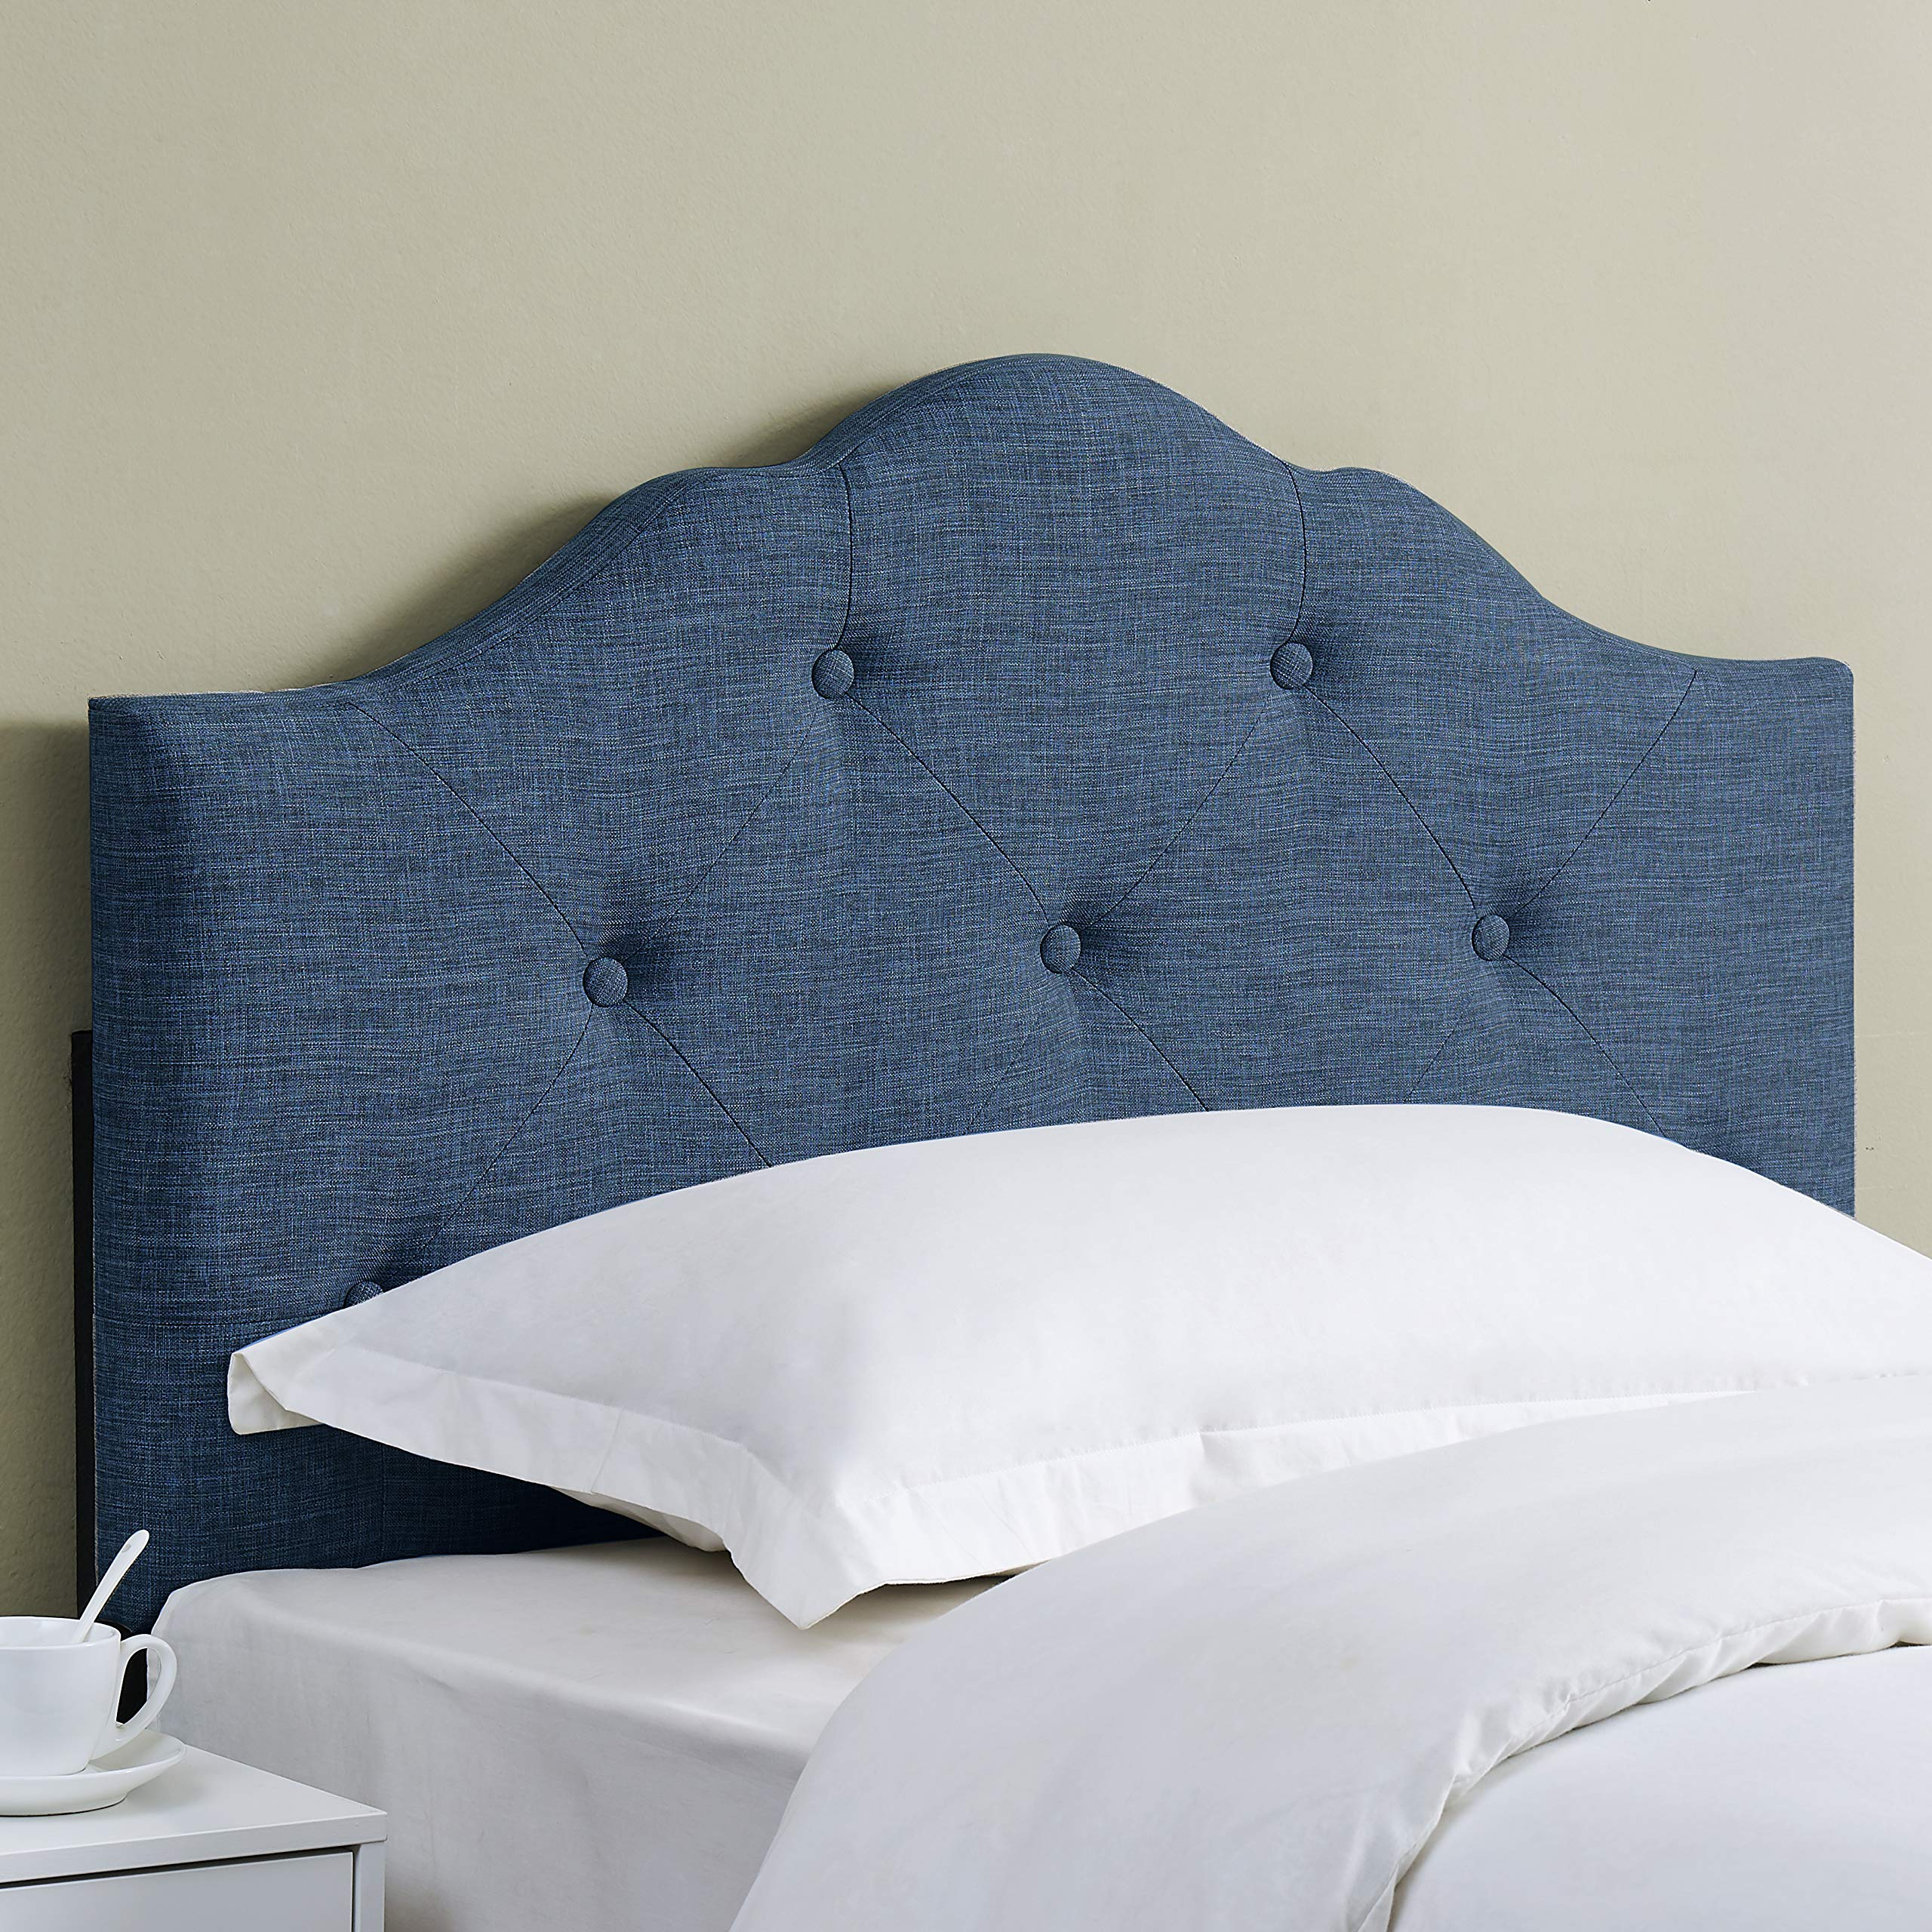 Mainstays Minimal Tufted Rounded Headboard, Multiple Sizes and Colors, Twin, Blue